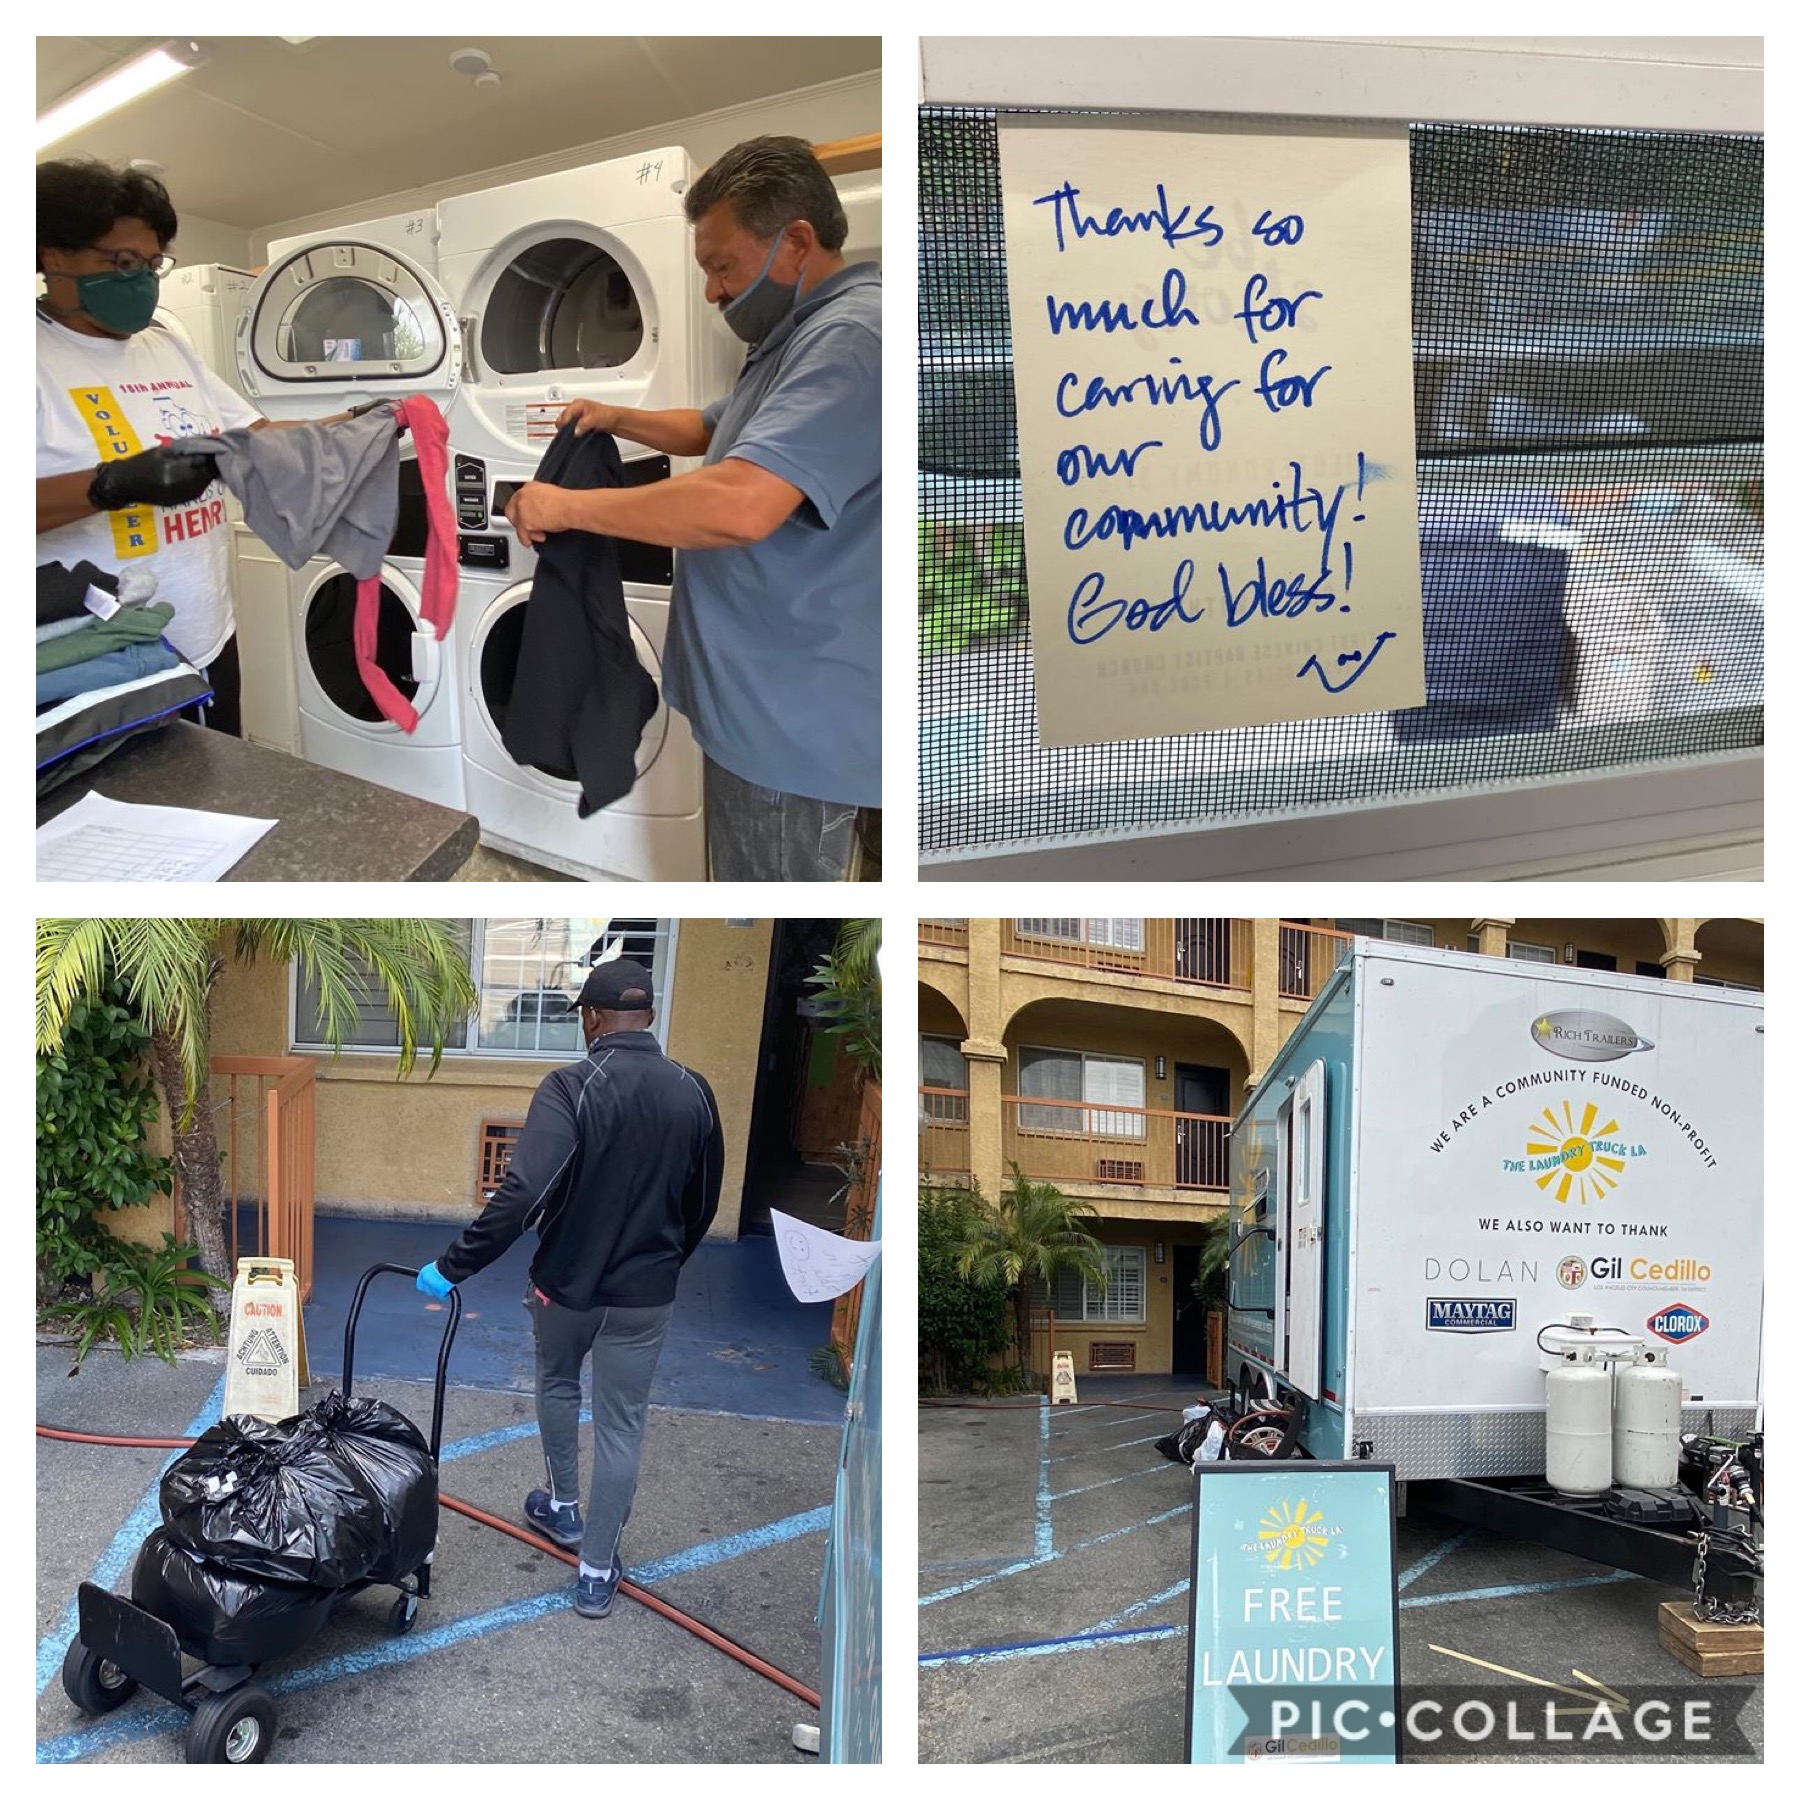 The Laundry Truck LA provided a new Project Room Key site in CD1 6-28-2020 Collage